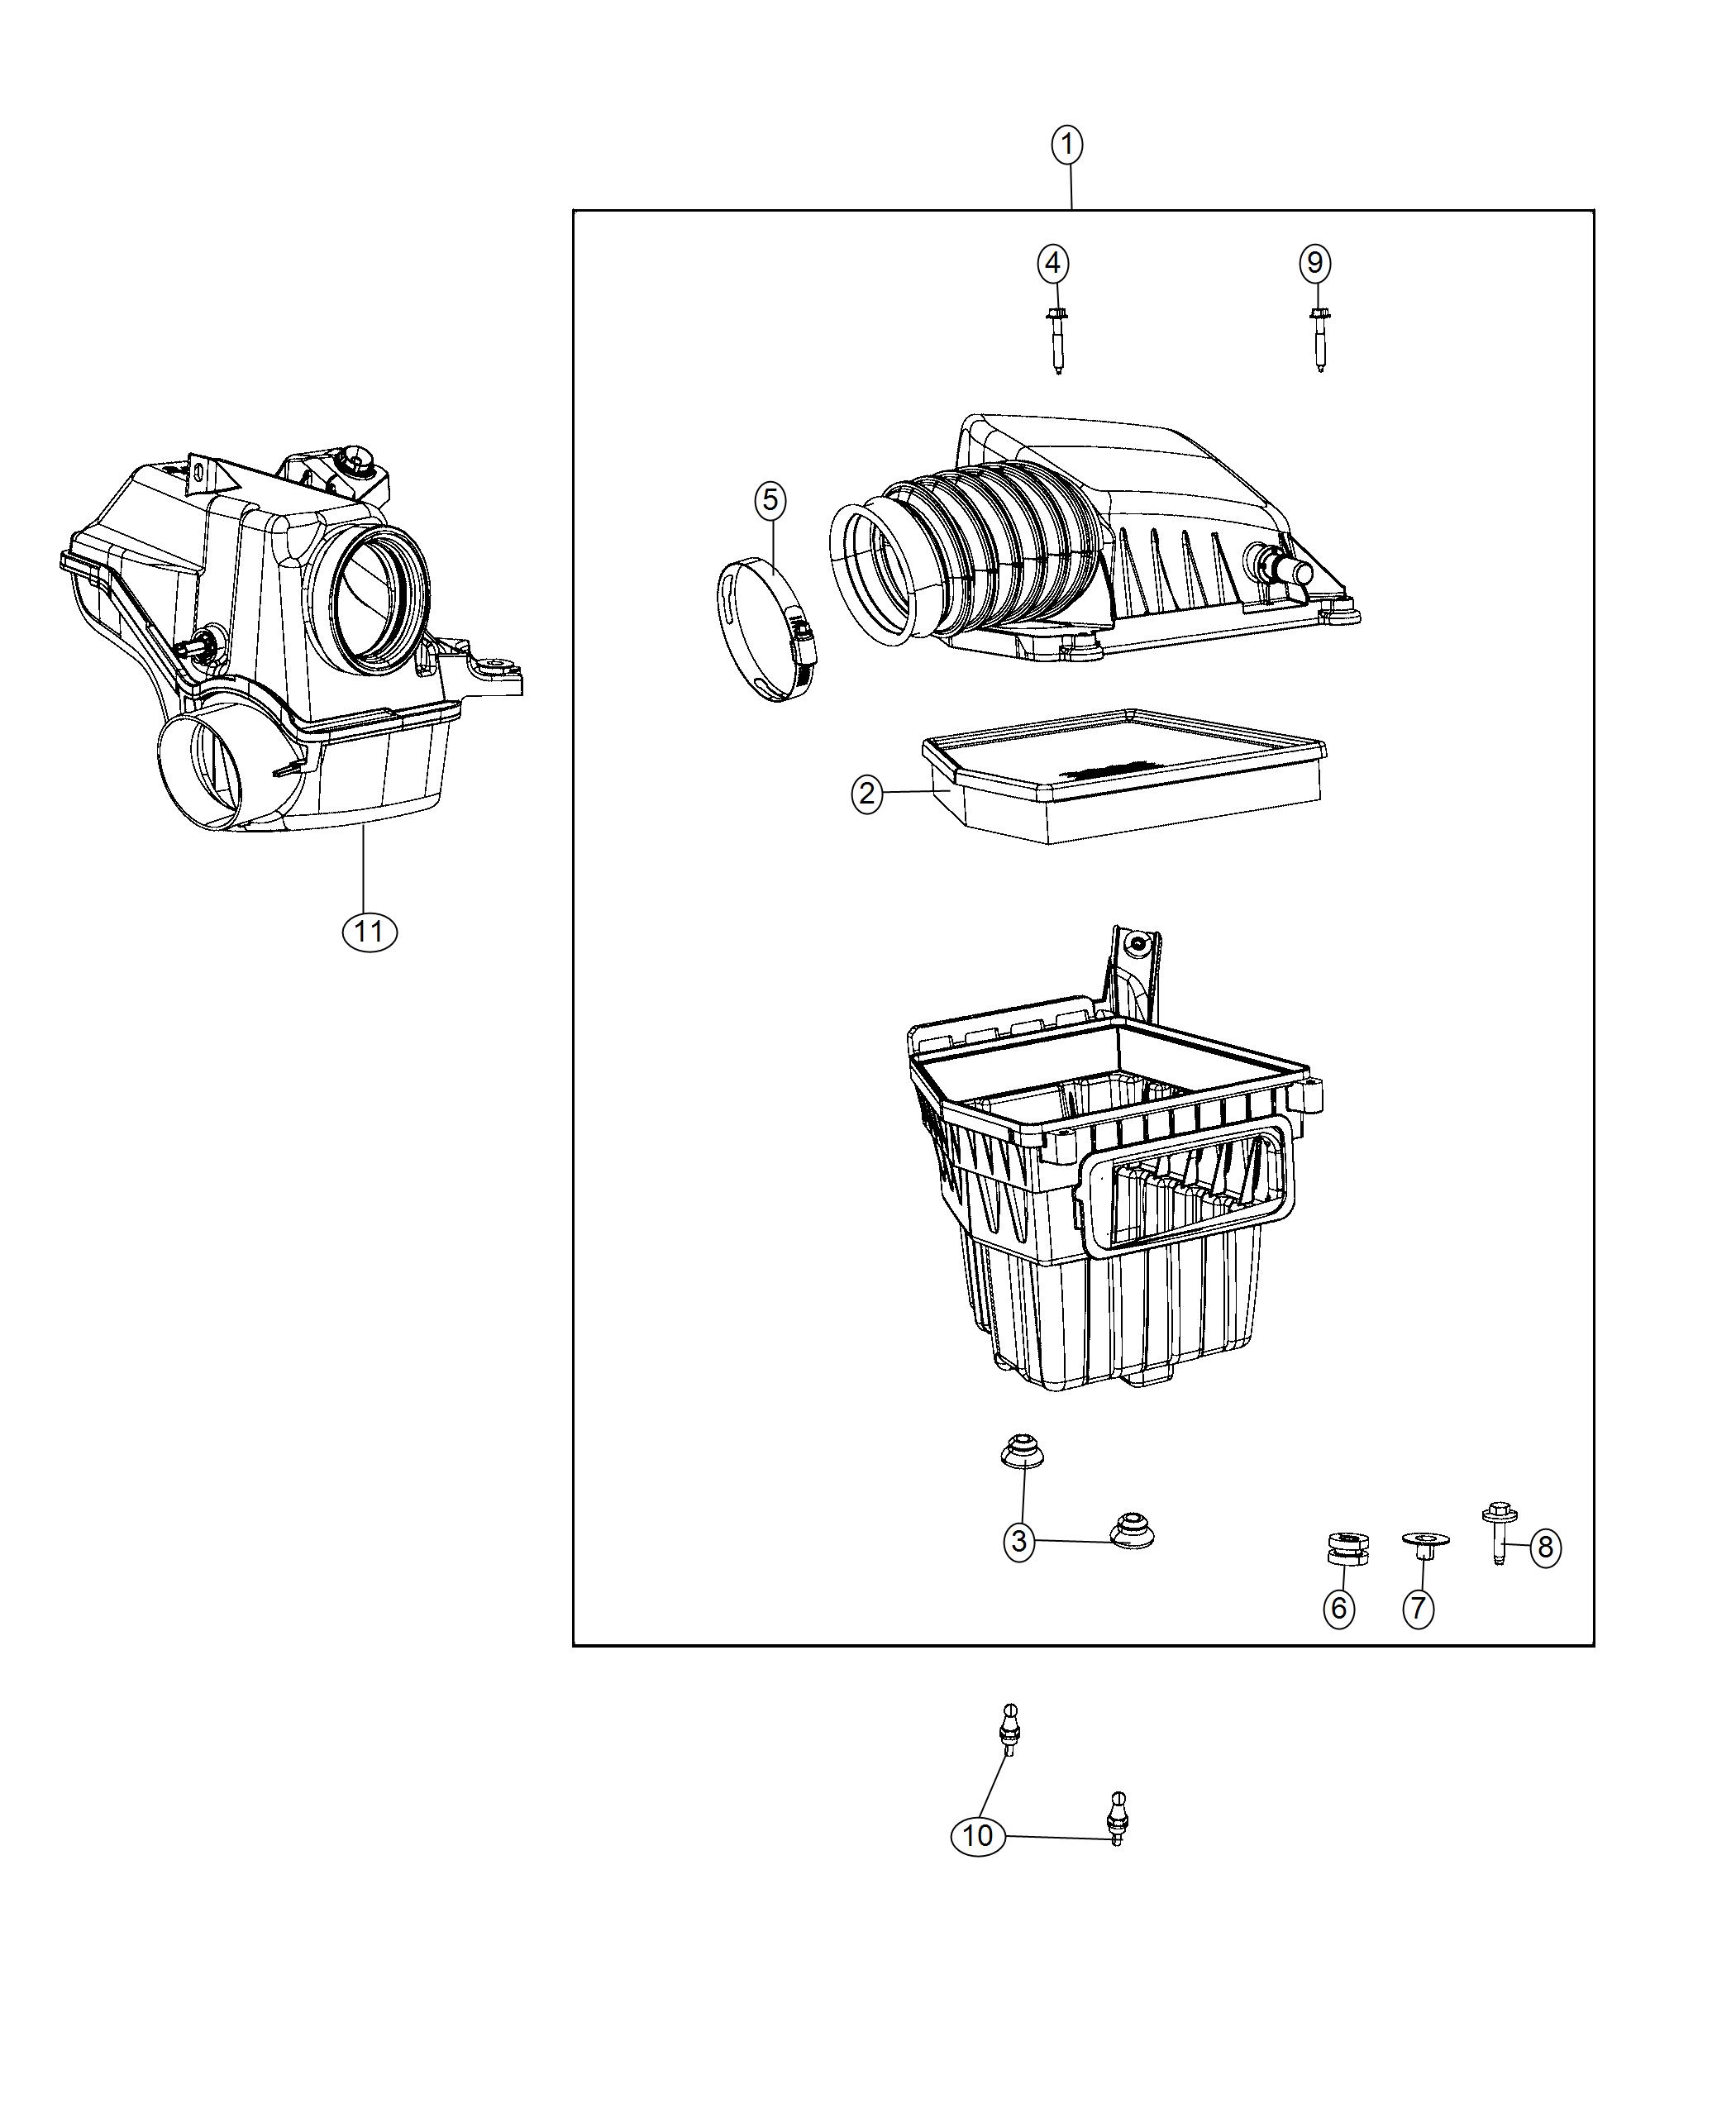 Chrysler Pacifica L Hybrid Air Cleaner Phev Adaptation Components